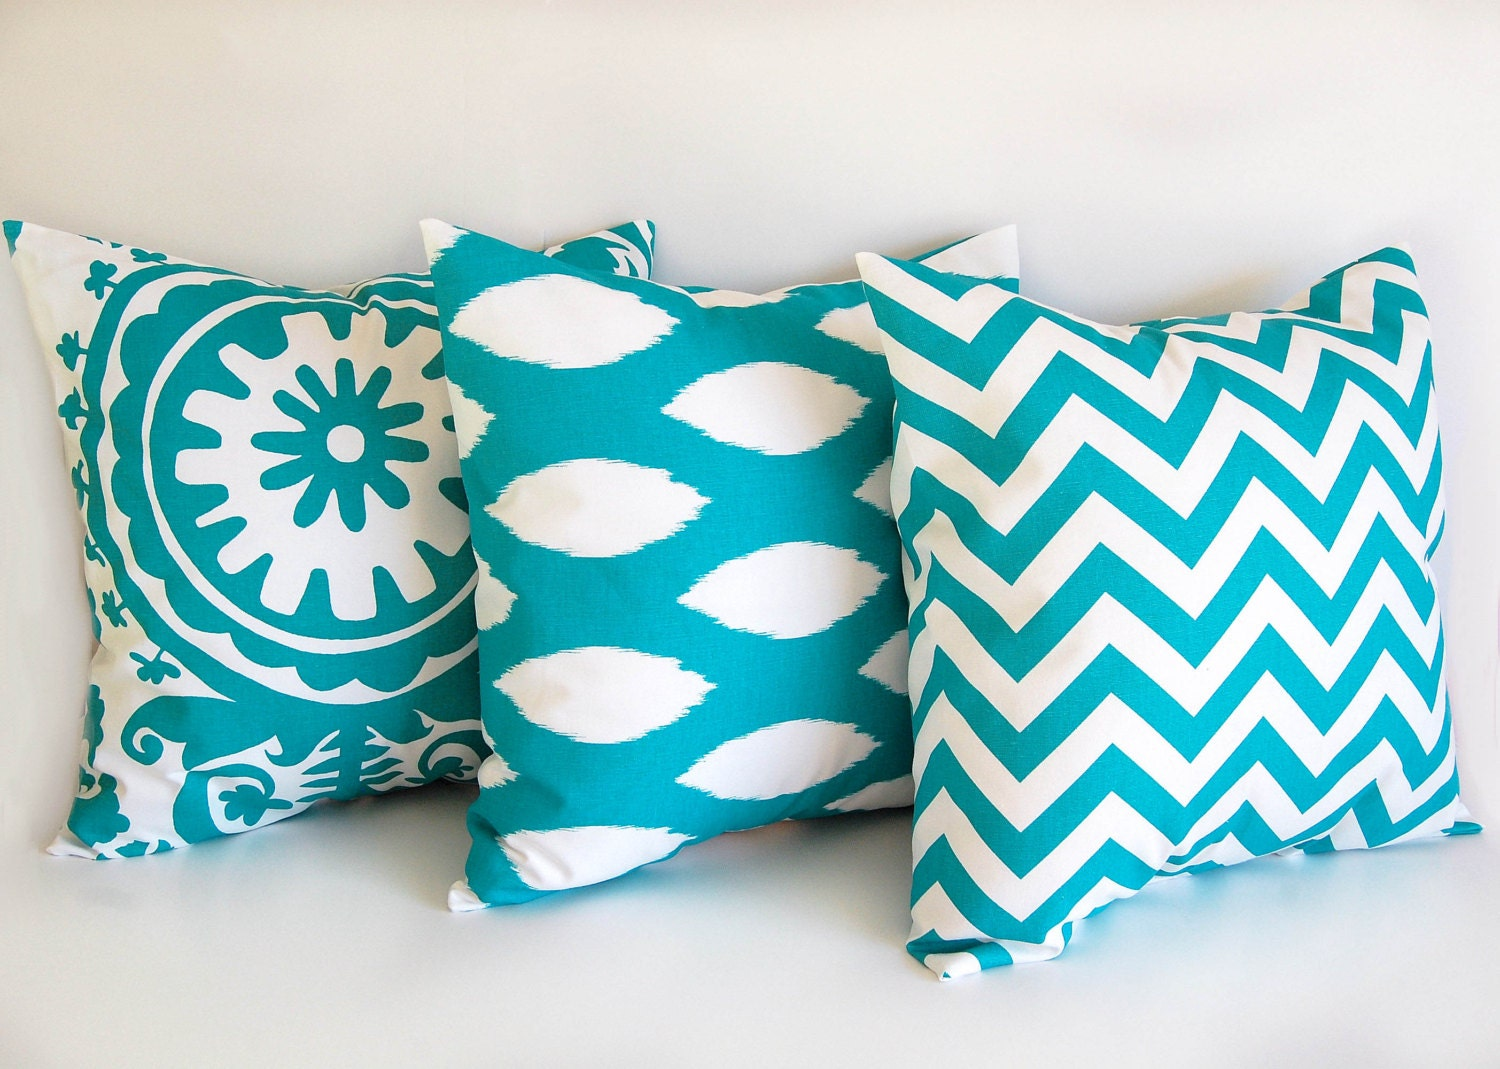 turquoise throw pillow covers 16 x 16 cushion by thepillowpeople. Black Bedroom Furniture Sets. Home Design Ideas